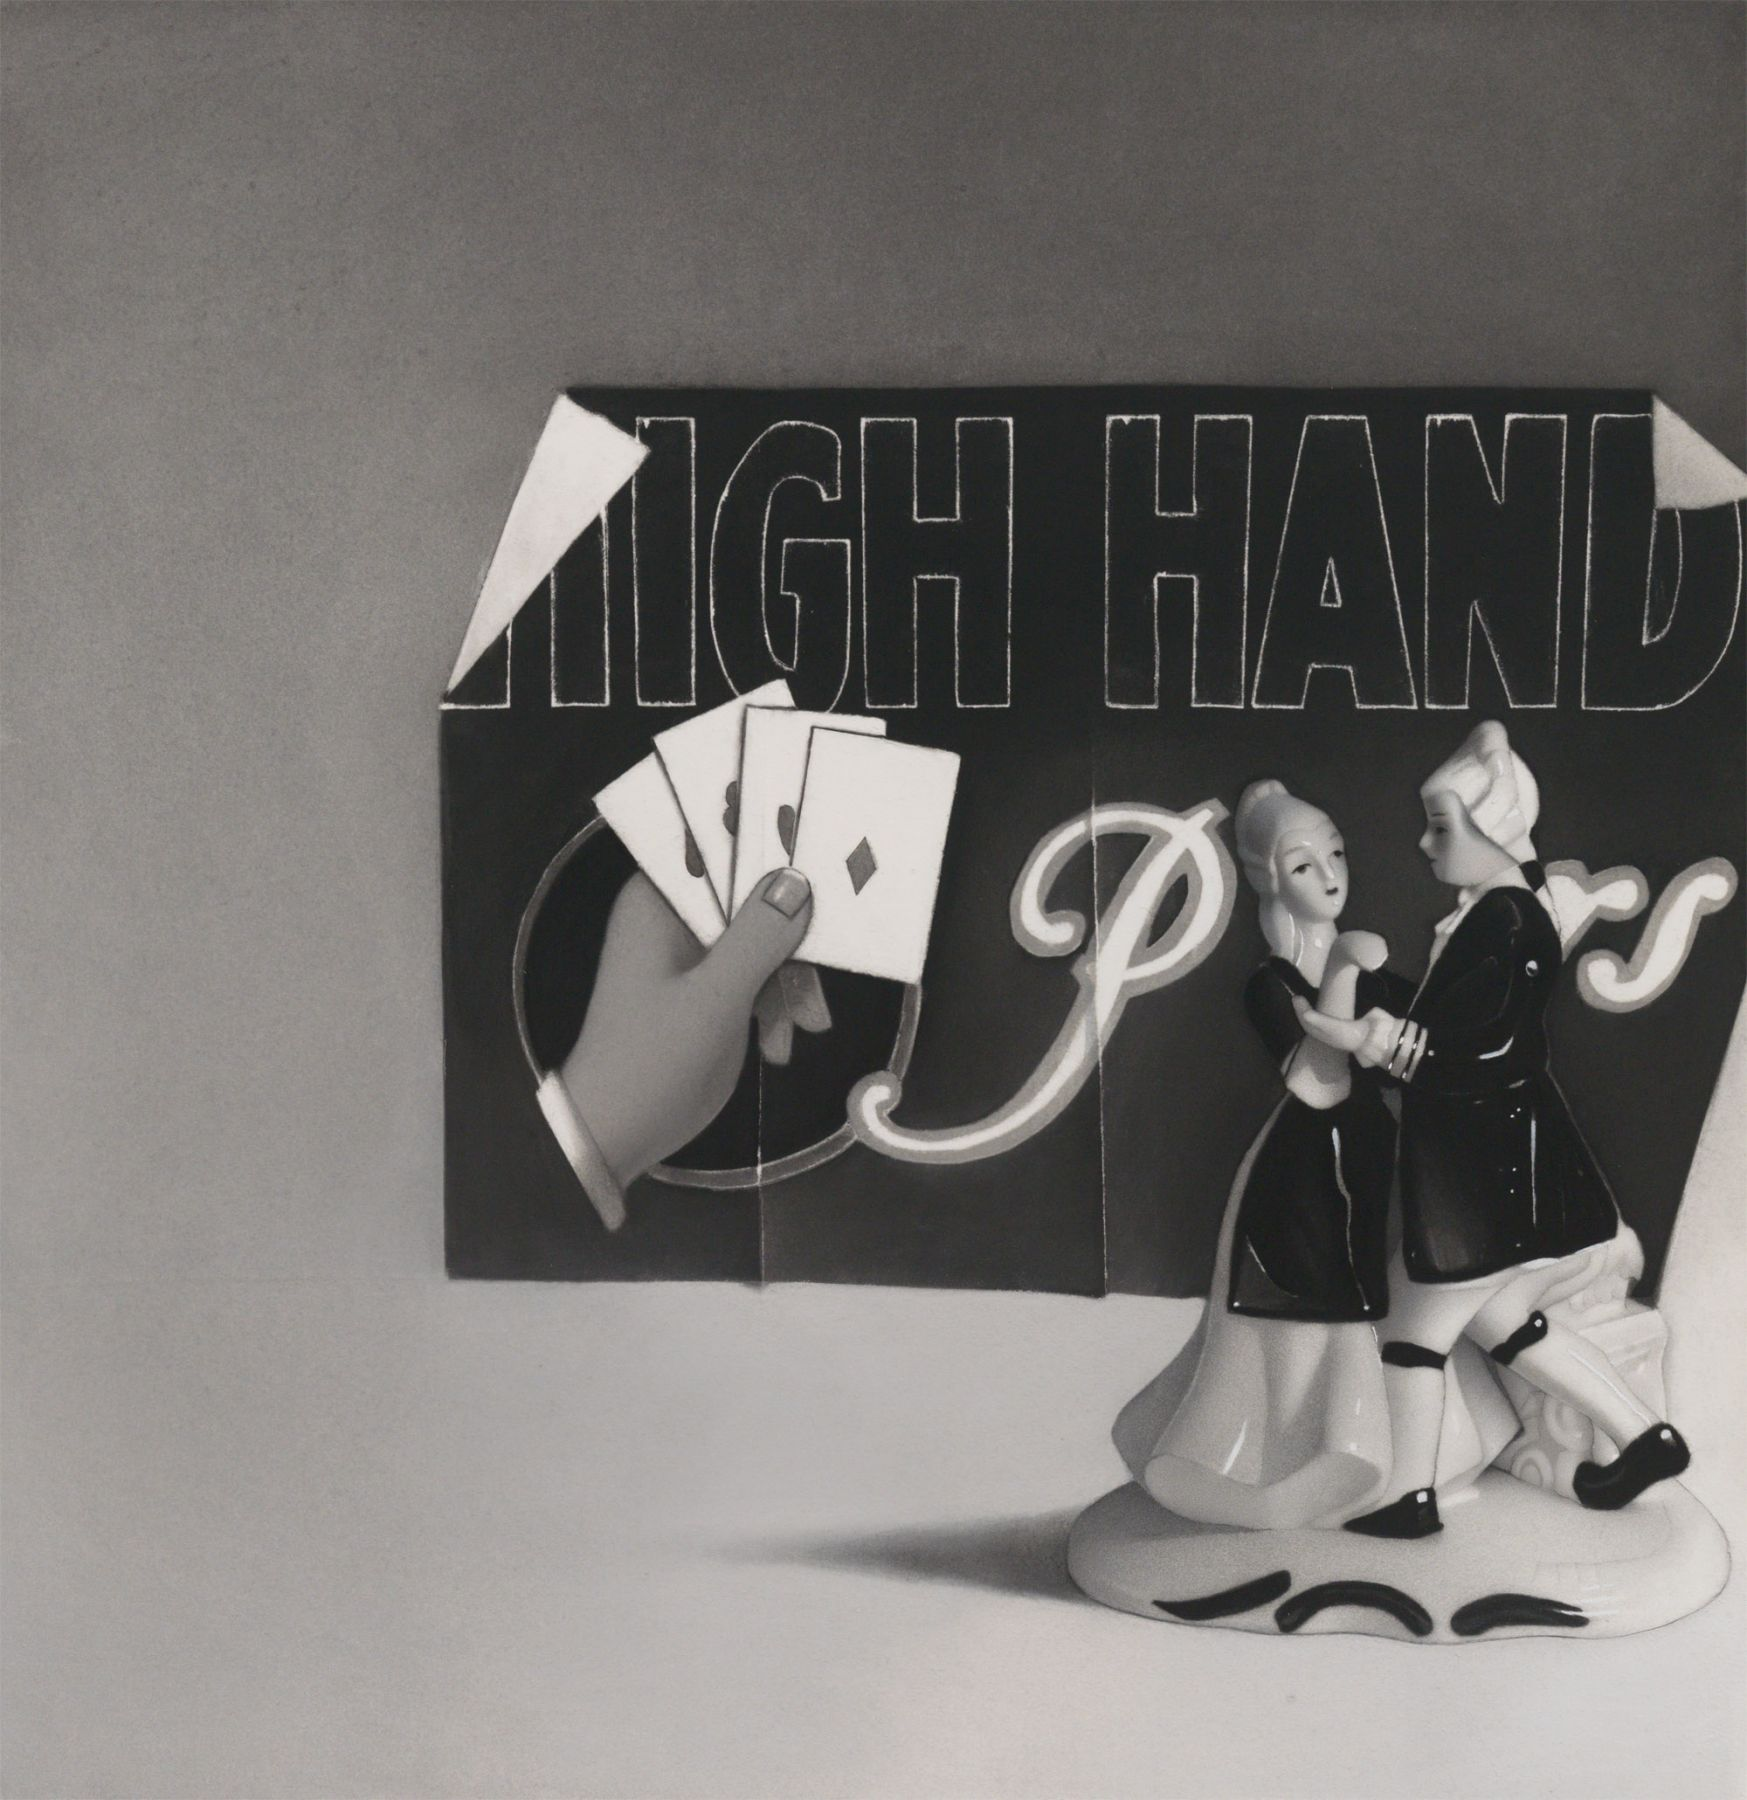 susan hauptman, Still Life (IGH HAND Ps), 2013, charcoal on paper, 32 x 34 inches